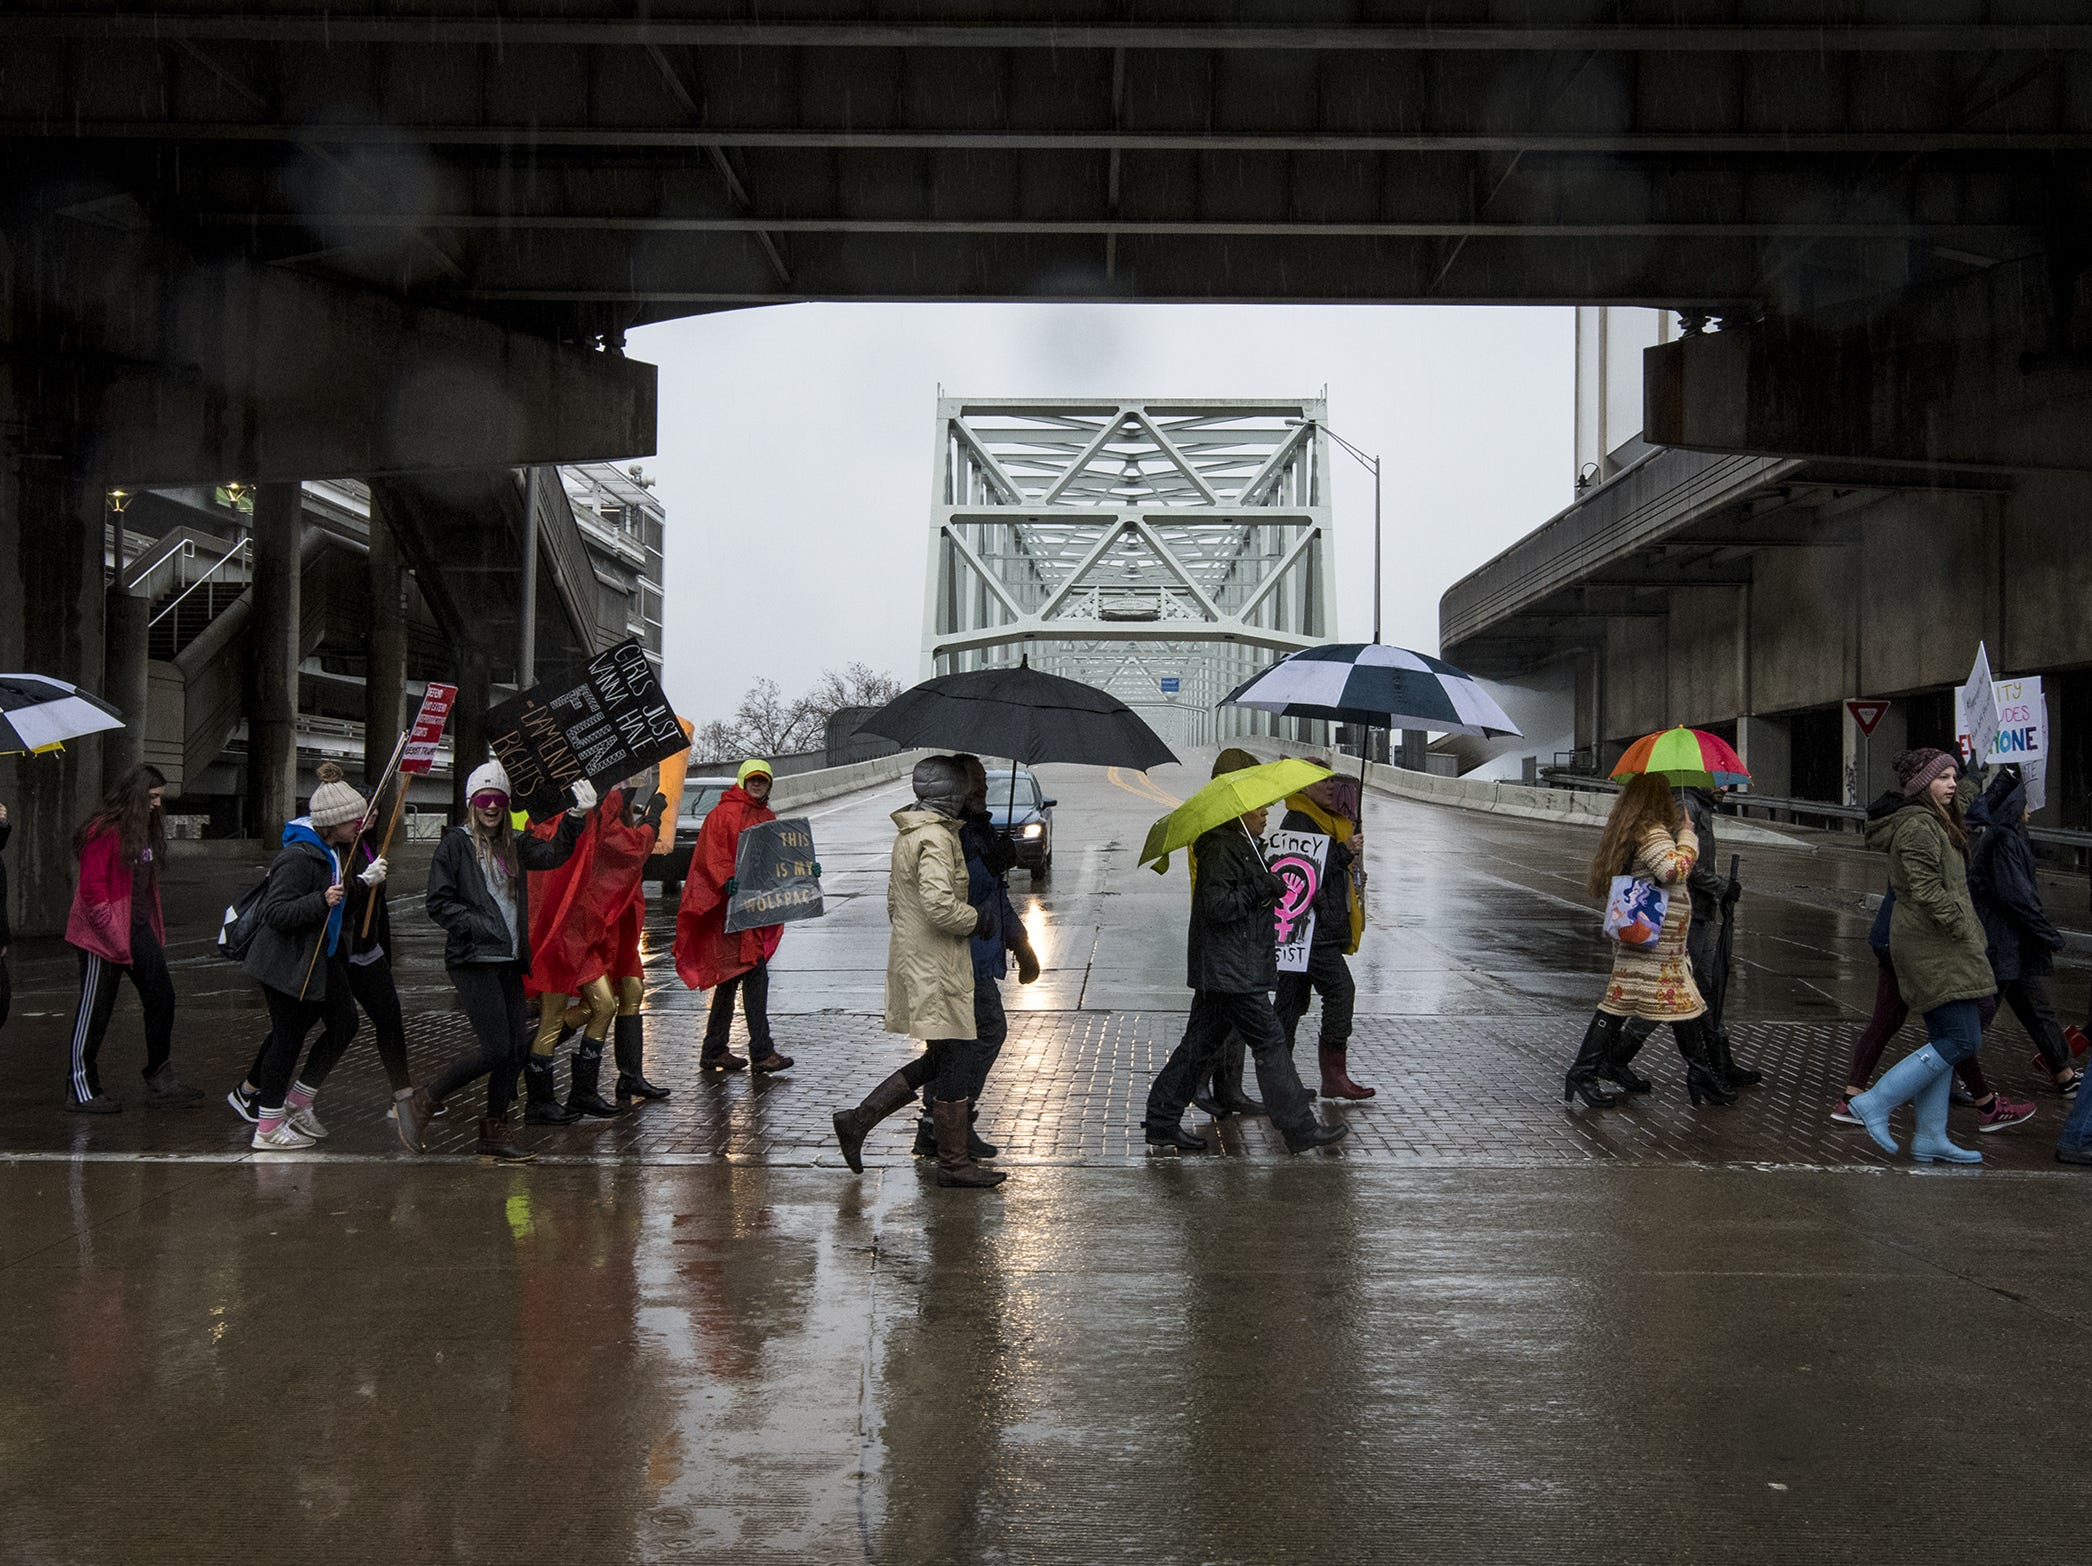 Over 100 people took to the streets for the 2019 Women's March organized by the Cincinnati chapters of Socialist Alternative, Democratic Socialists of America and the International Socialist Organization Saturday, January 19, 2019 in Cincinnati, Ohio.